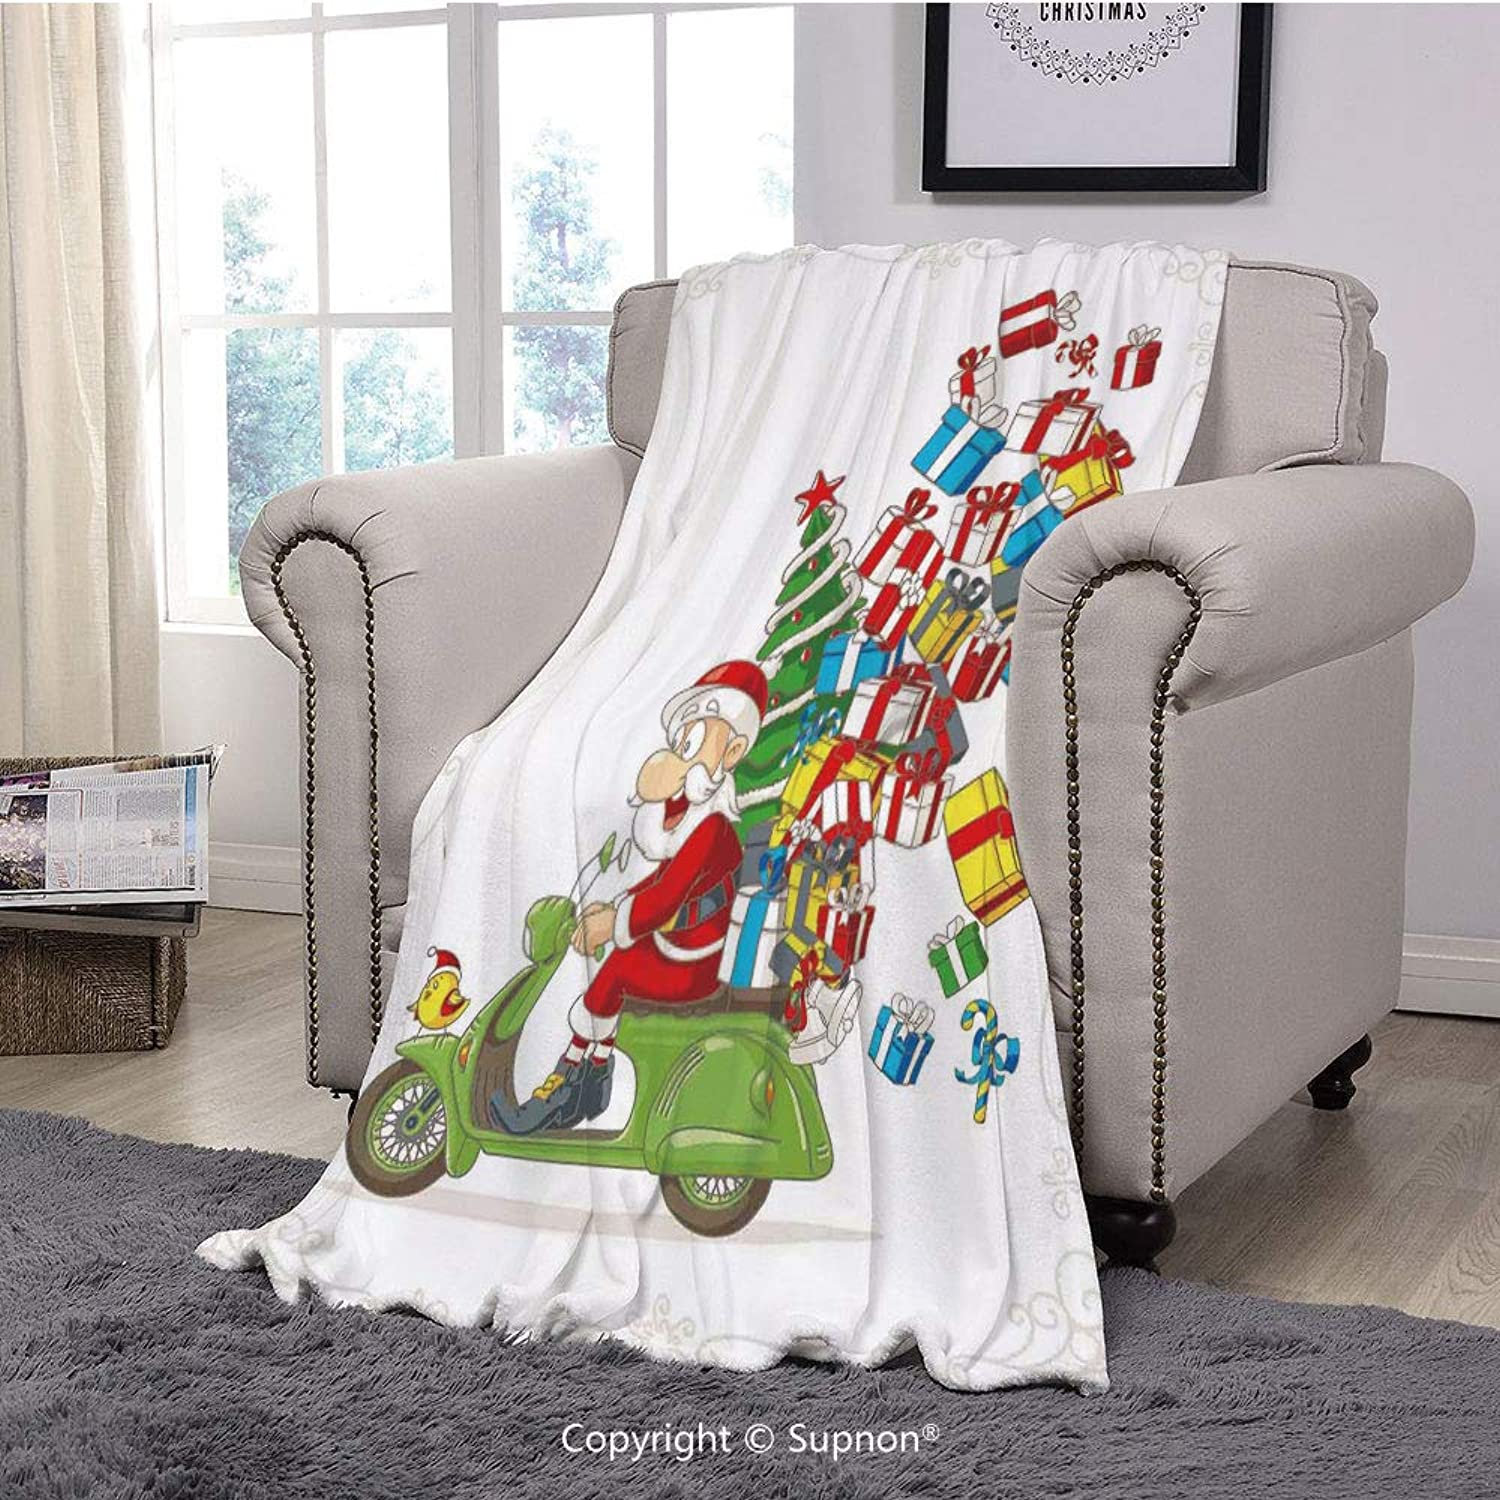 BeeMeng Throw Blanket Super Soft Fuzzy Light Blanket,Christmas,Santa on Motorbike Scooter with Tree and Gifts Funny Cartoon for Kids Bird,White Green Red(51  x 51 )